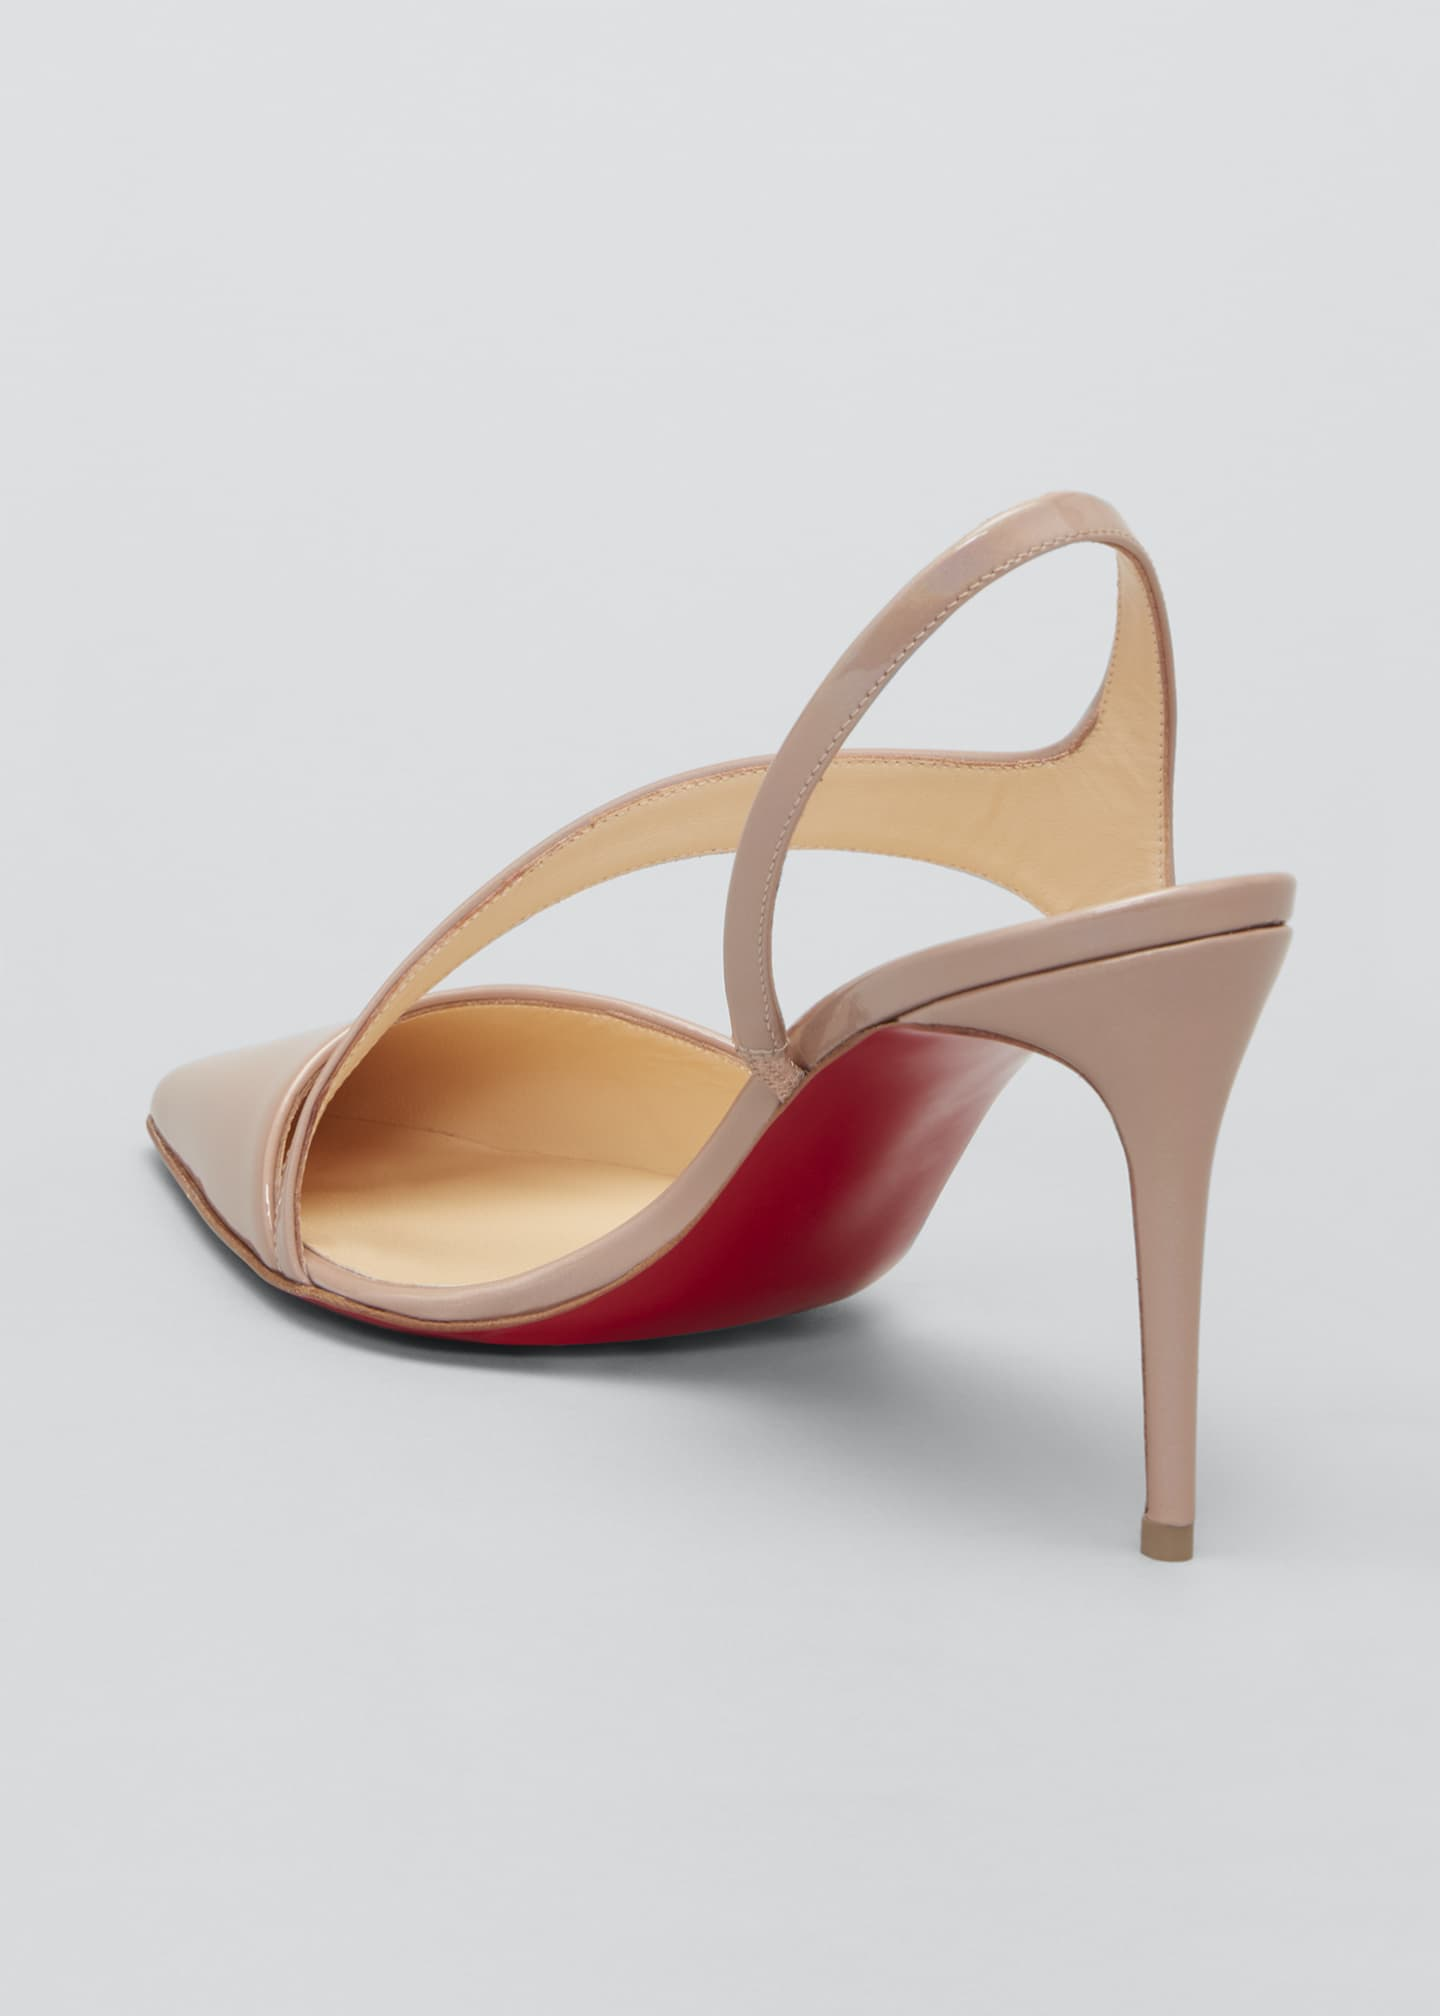 Image 2 of 3: Brandina Patent Red Sole Slingback Pumps